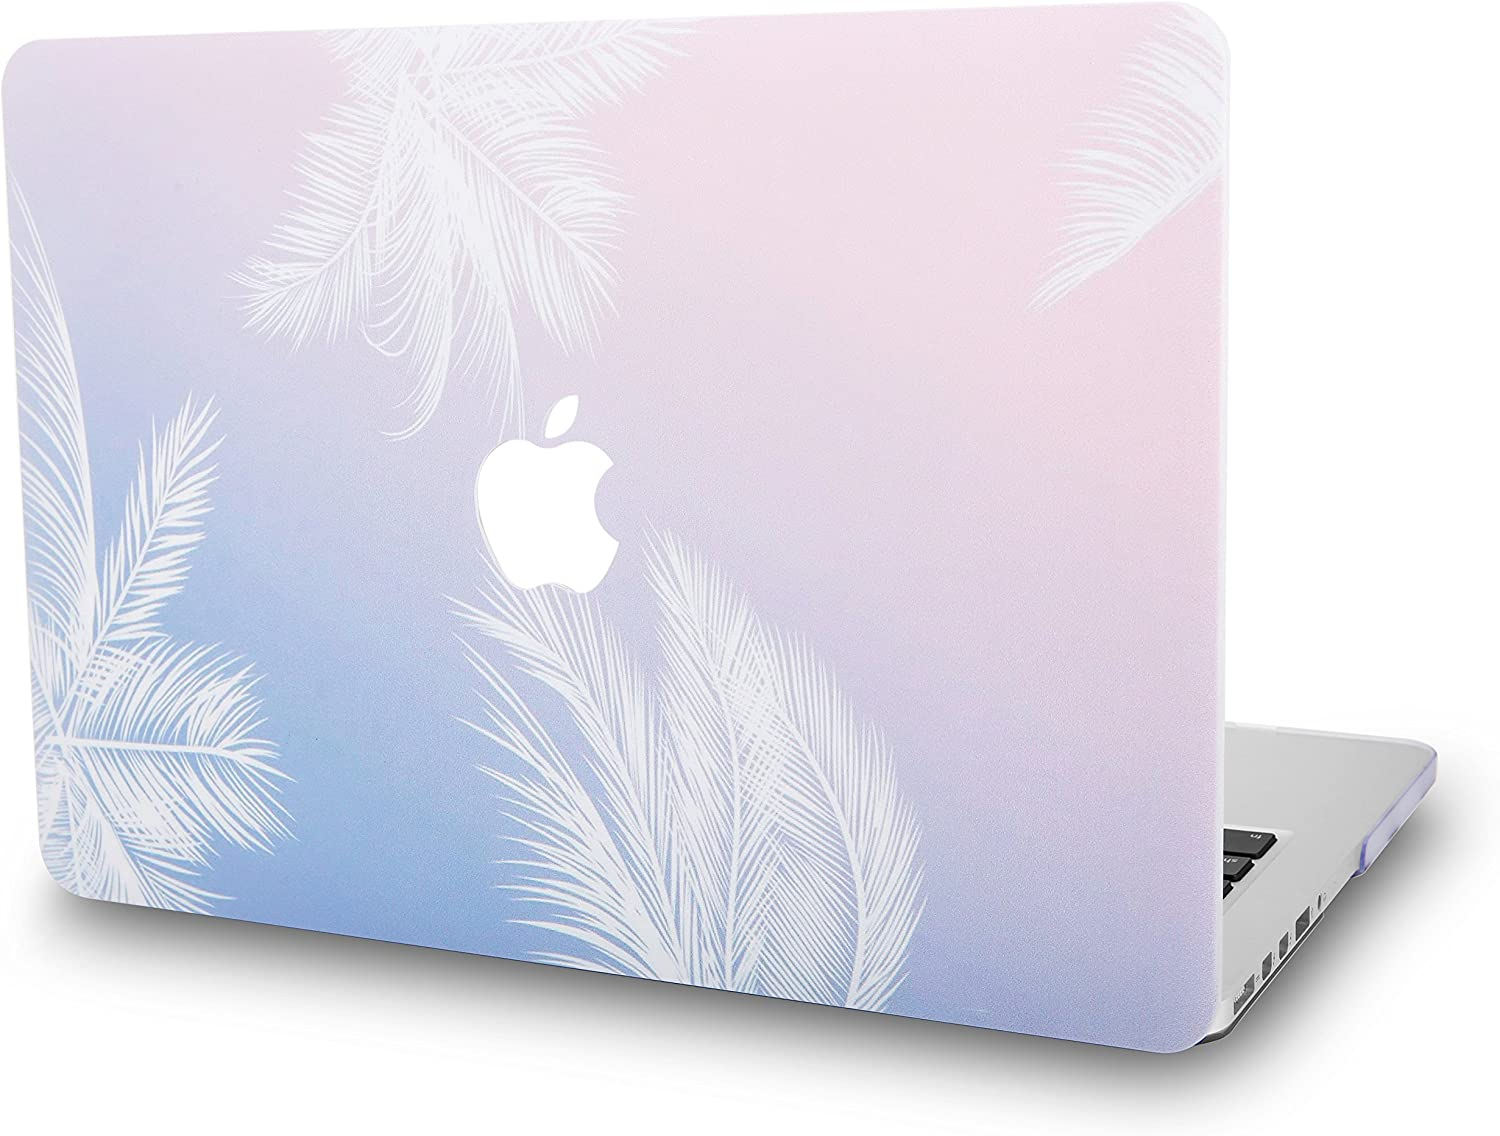 "KECC Laptop Case for MacBook Pro 13"" (2020/2019/2018/2017/2016) Plastic Hard Shell Cover A2289/A2251/A2159/A1989/A1706/A1708 Touch Bar (Blue Feather)"